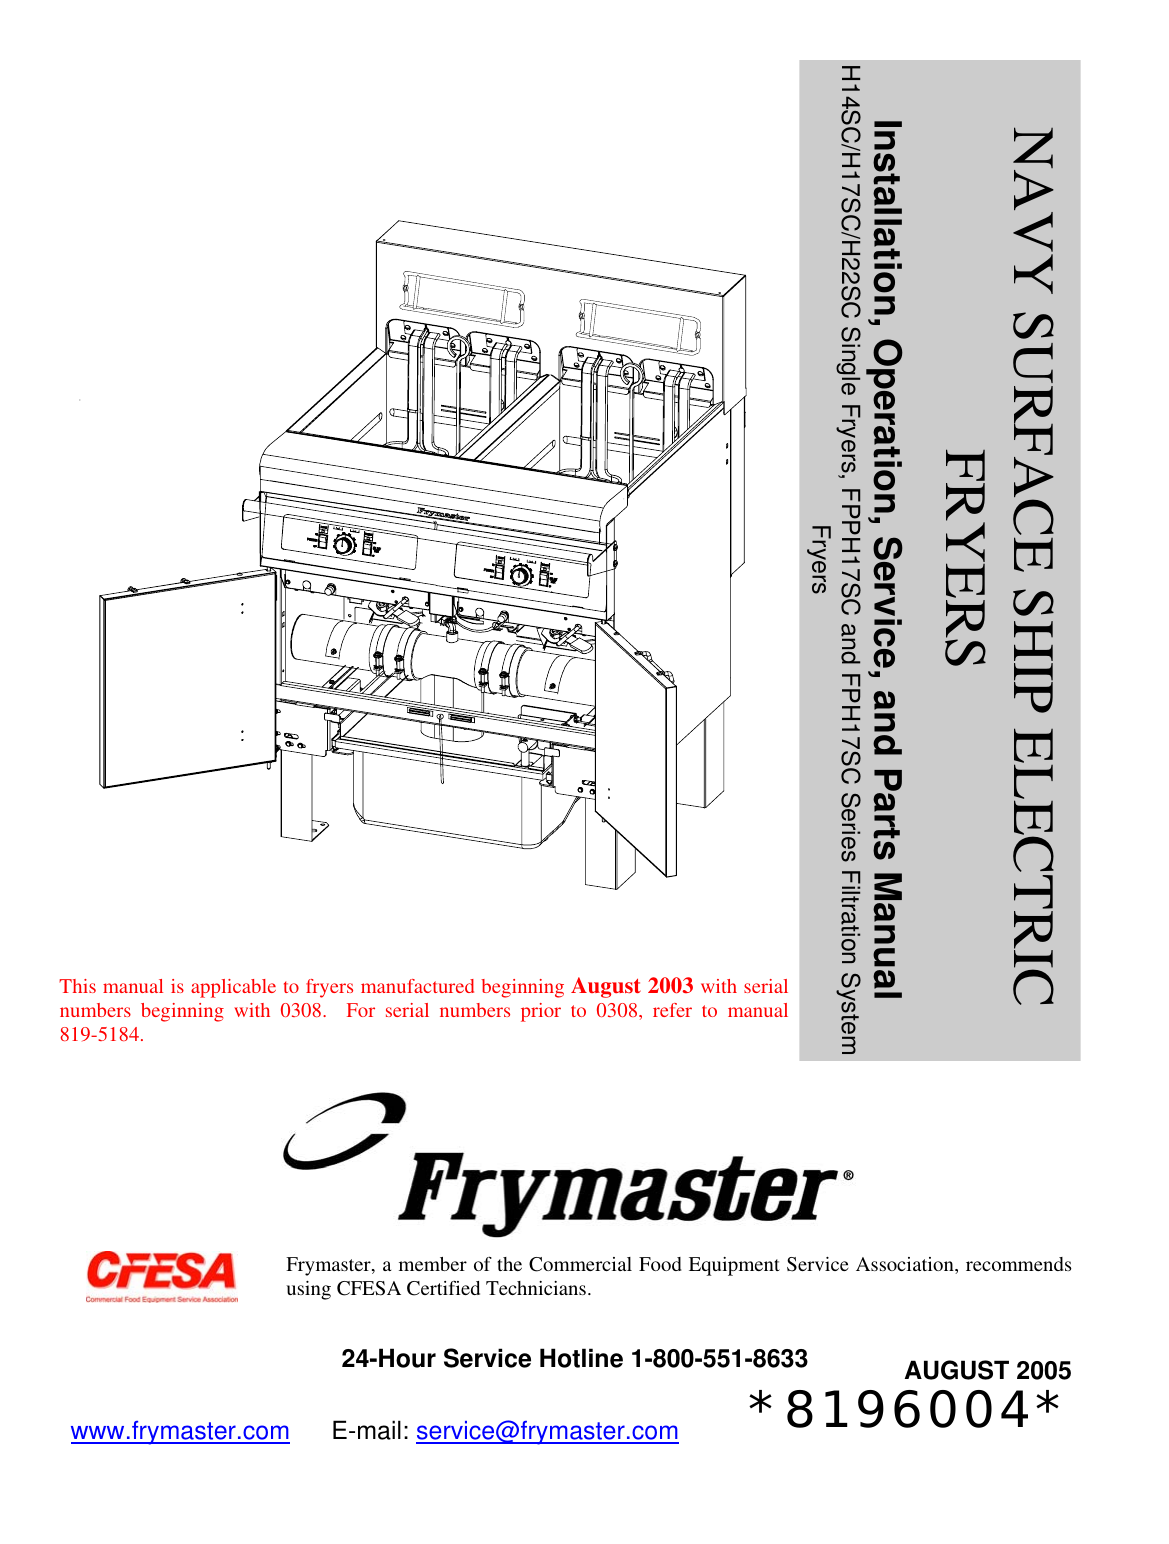 frymaster h14sc users manual 819 6004 aug 05 front cover rh usermanual wiki Simple Wiring Diagrams frymaster fryer wiring diagram